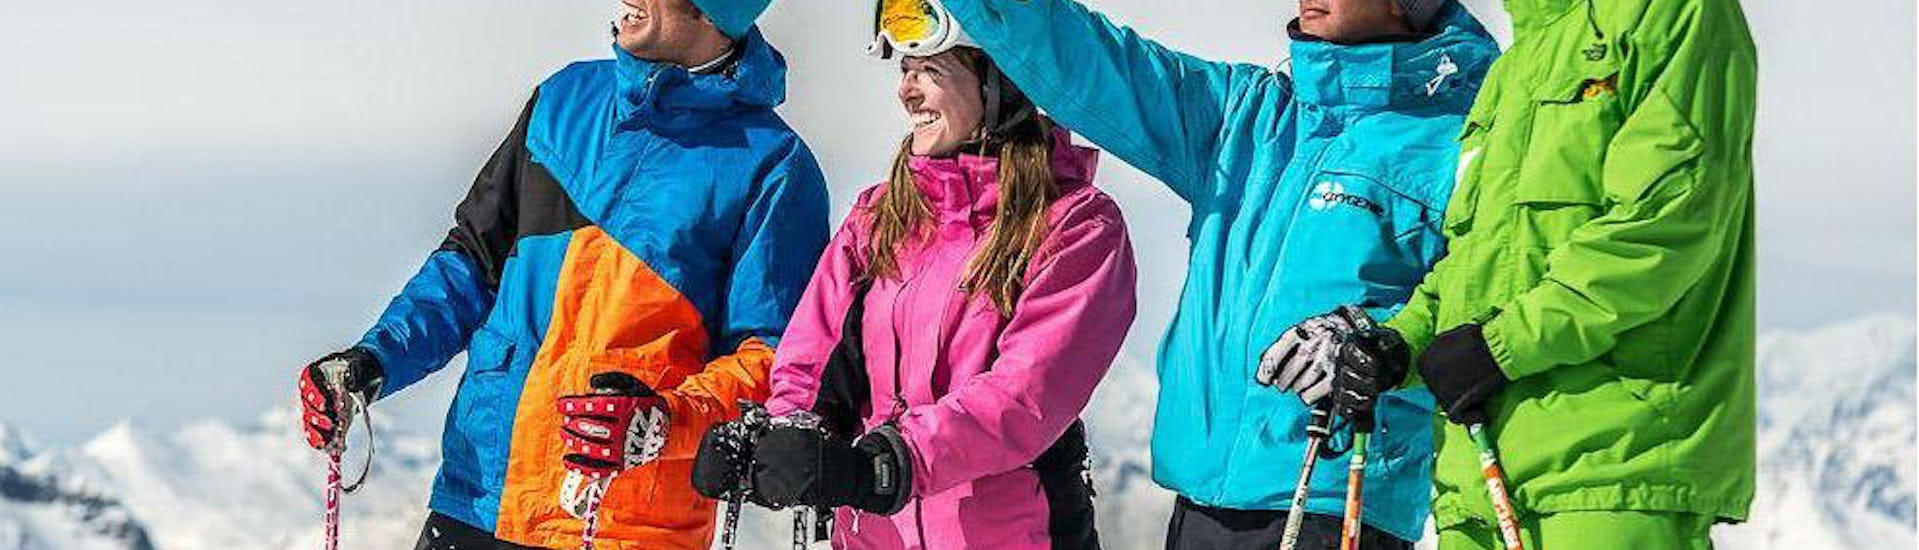 Ski Lessons for Adults - February Holiday - First Timer